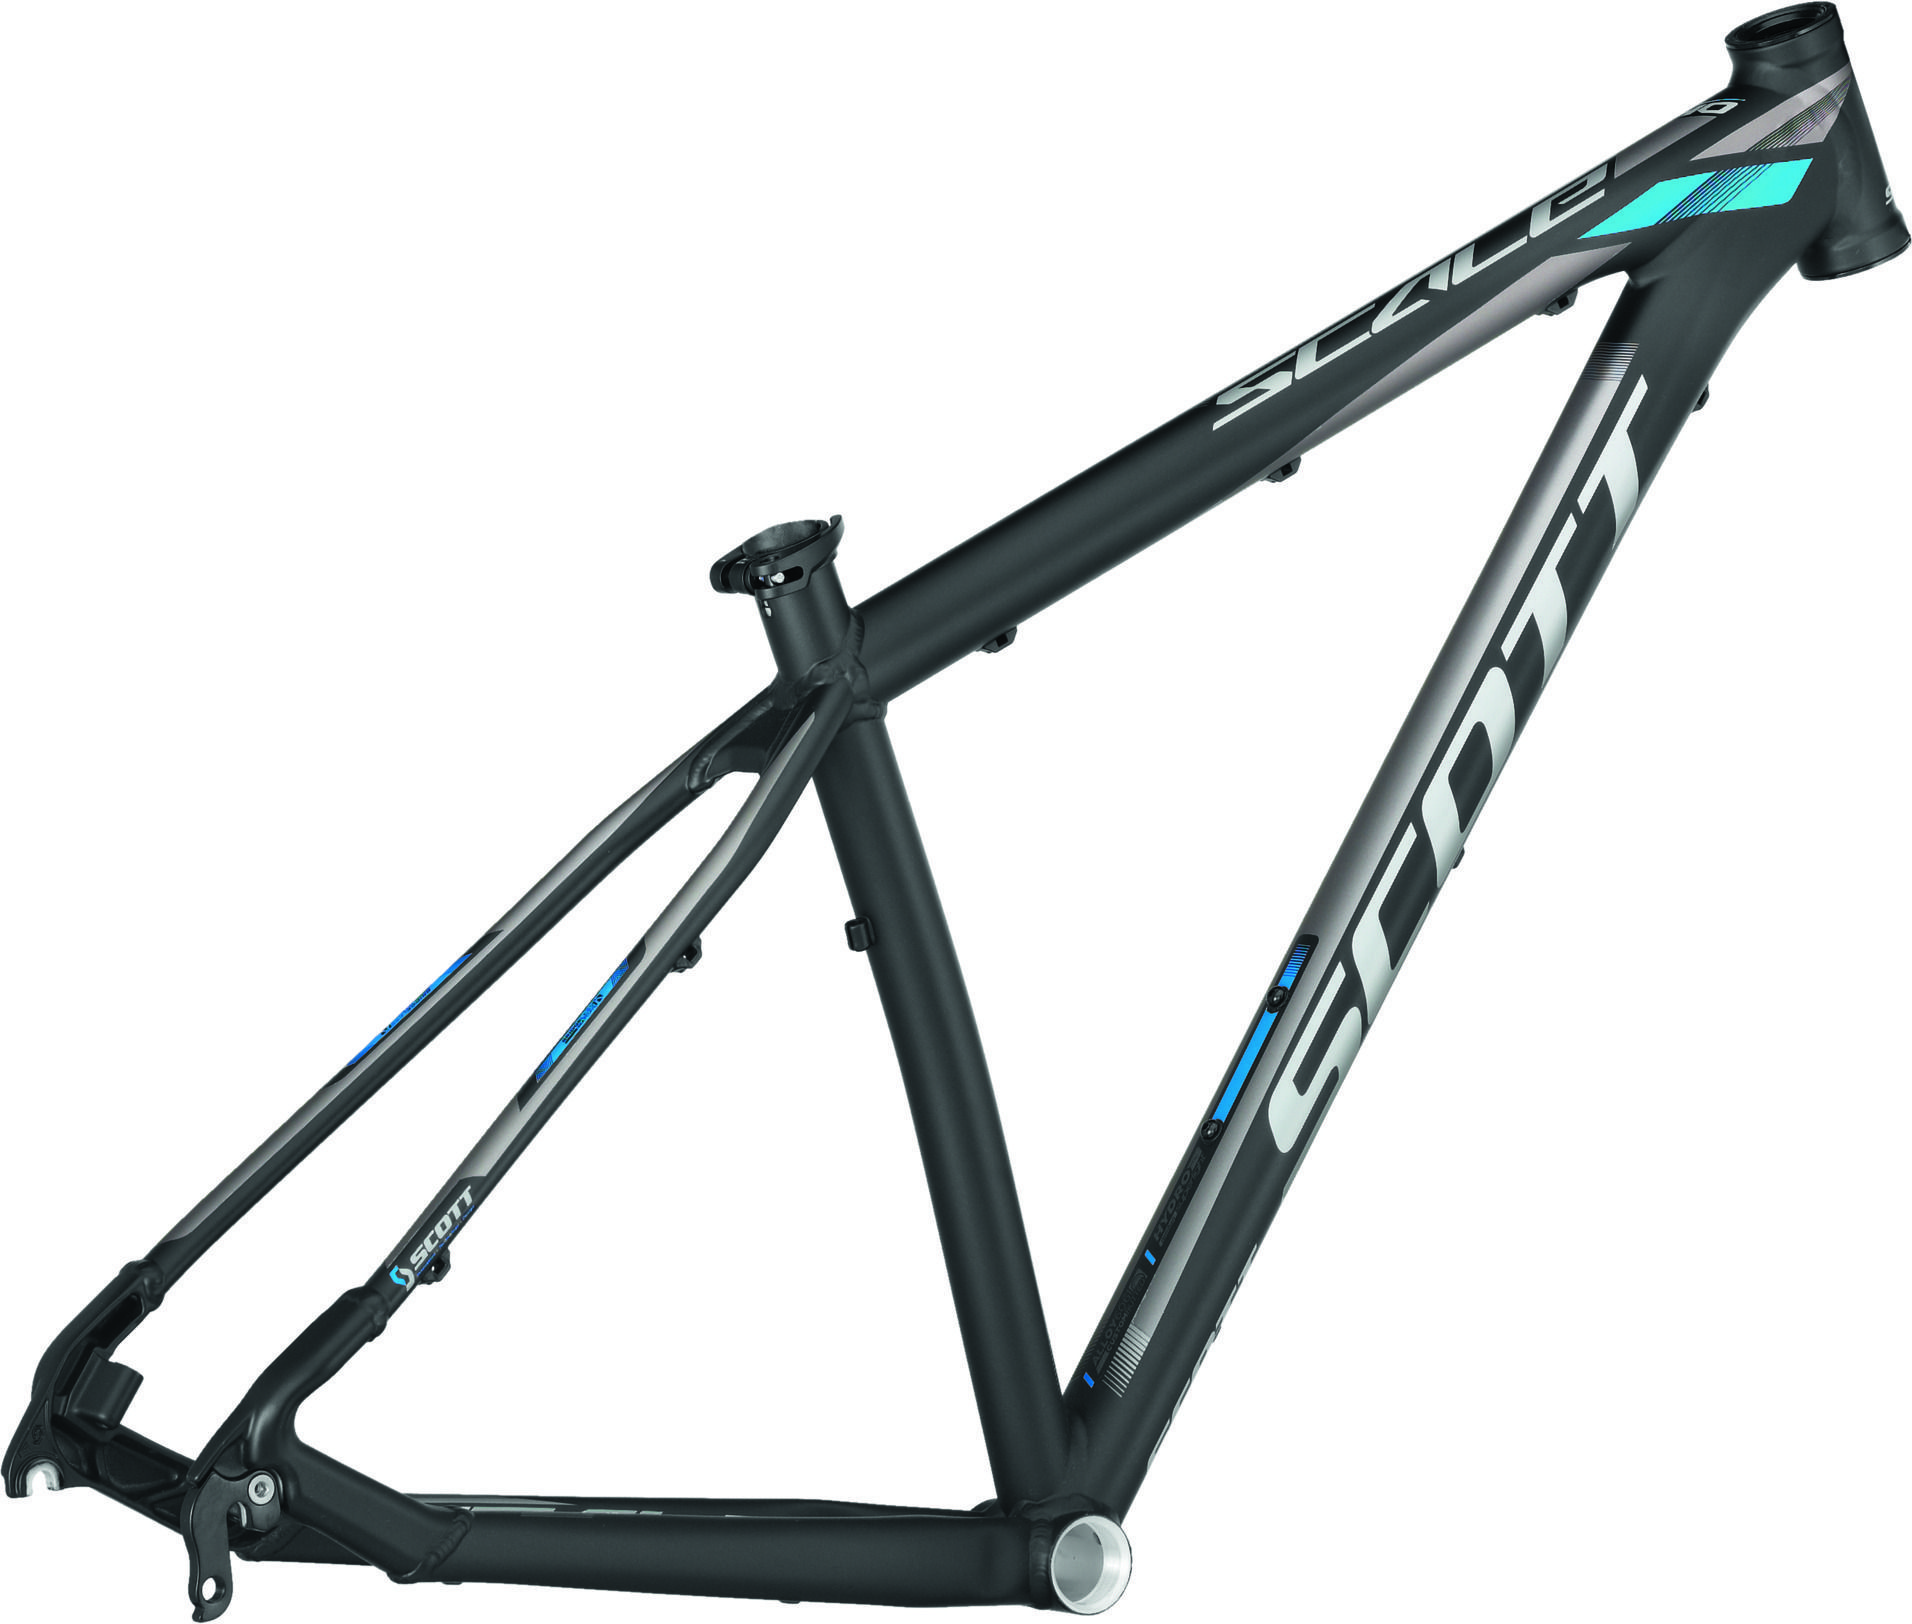 Scott Frame Set Scale 940 2013 Review The Bike List